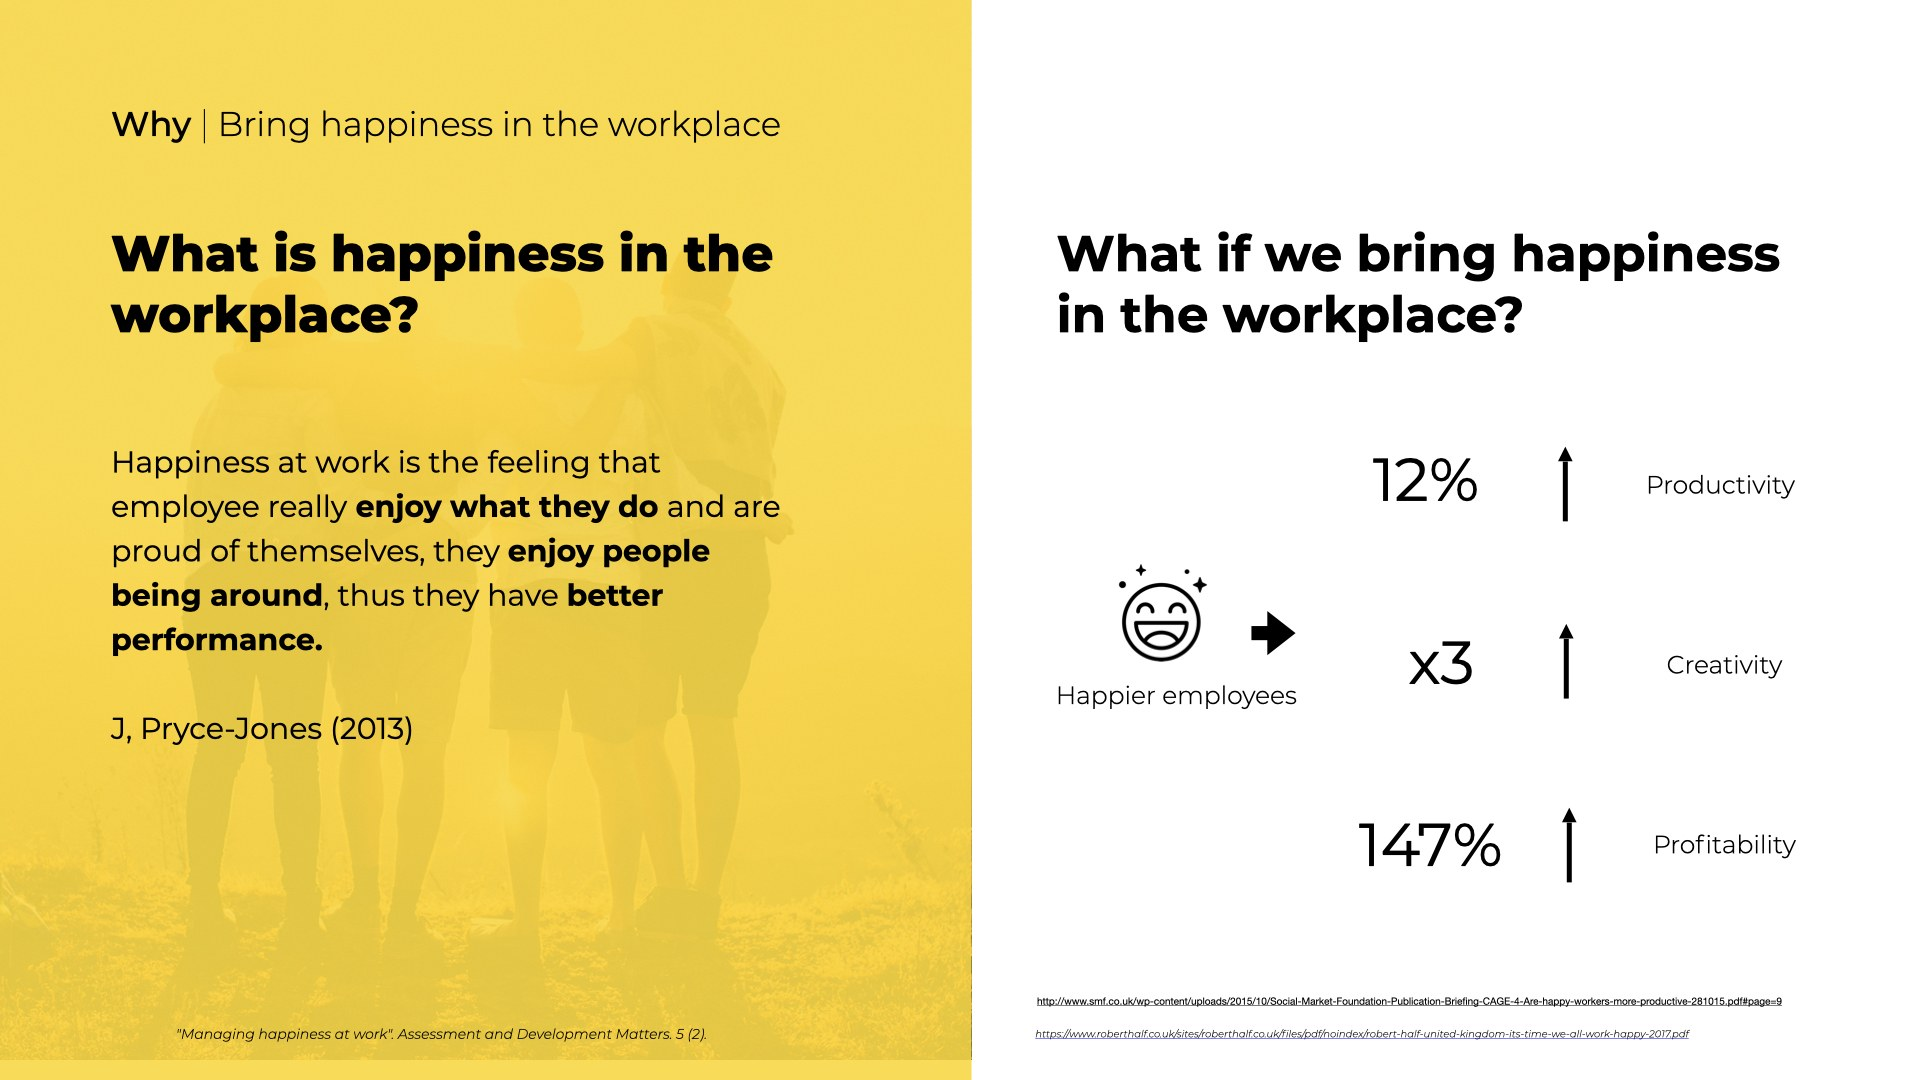 What if we bring happiness in the workplace?